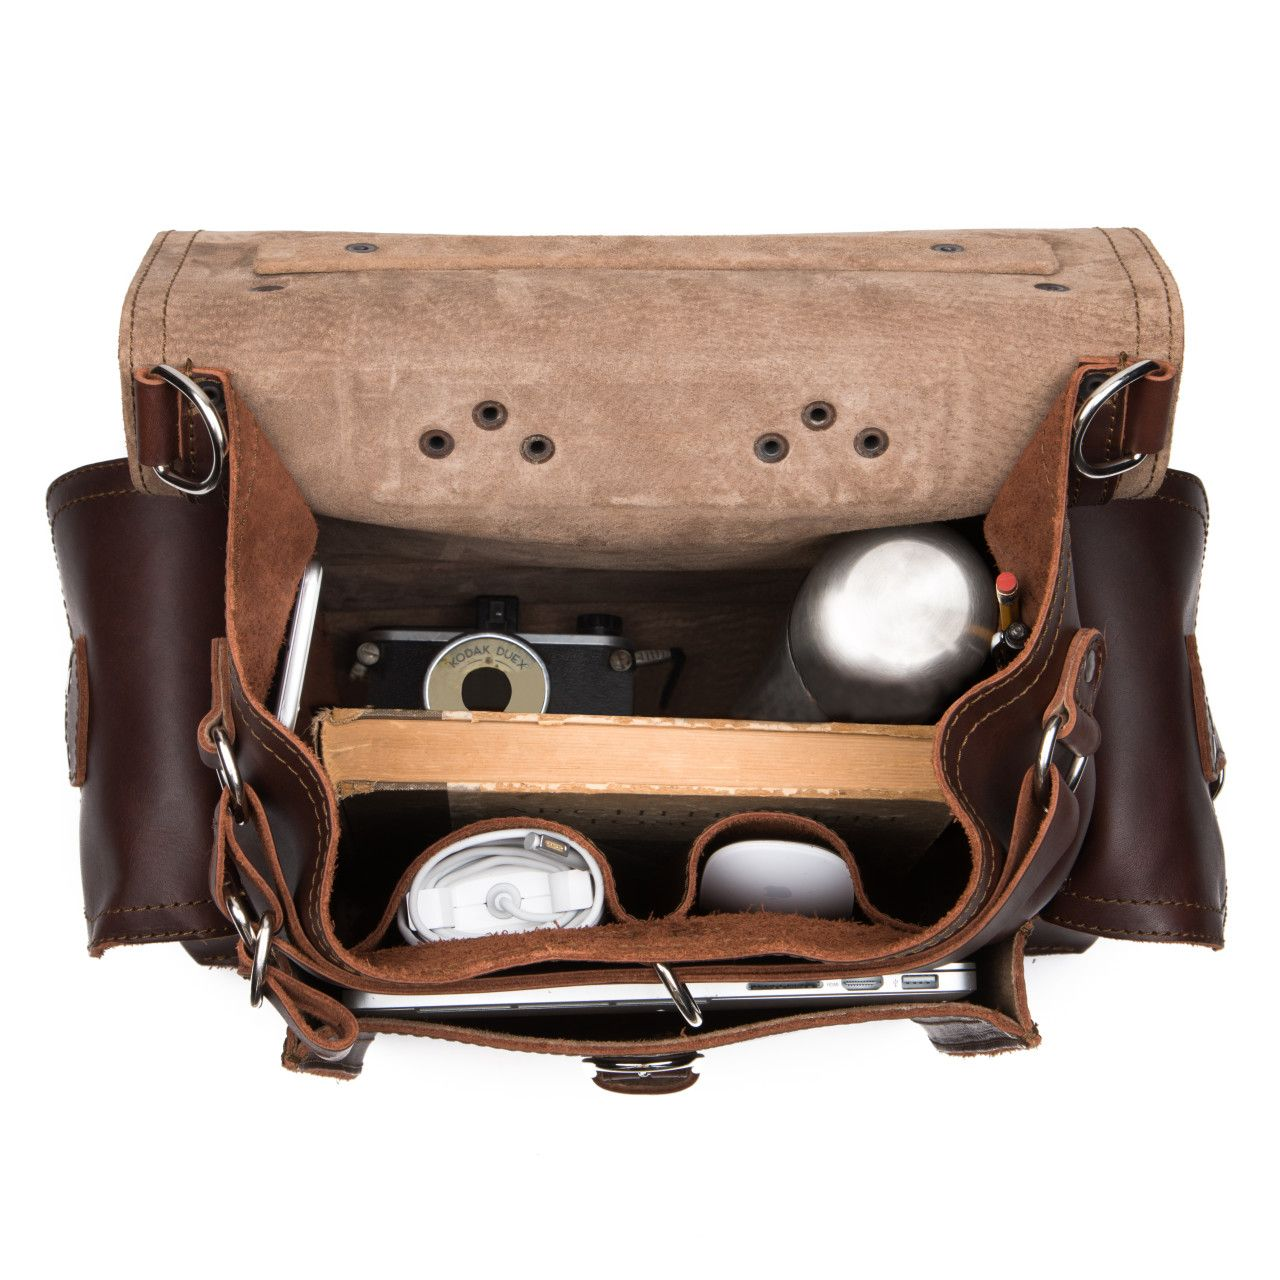 An old camera and a macbook with a set to handle the inside of the squared leather backpack in chestnut leather